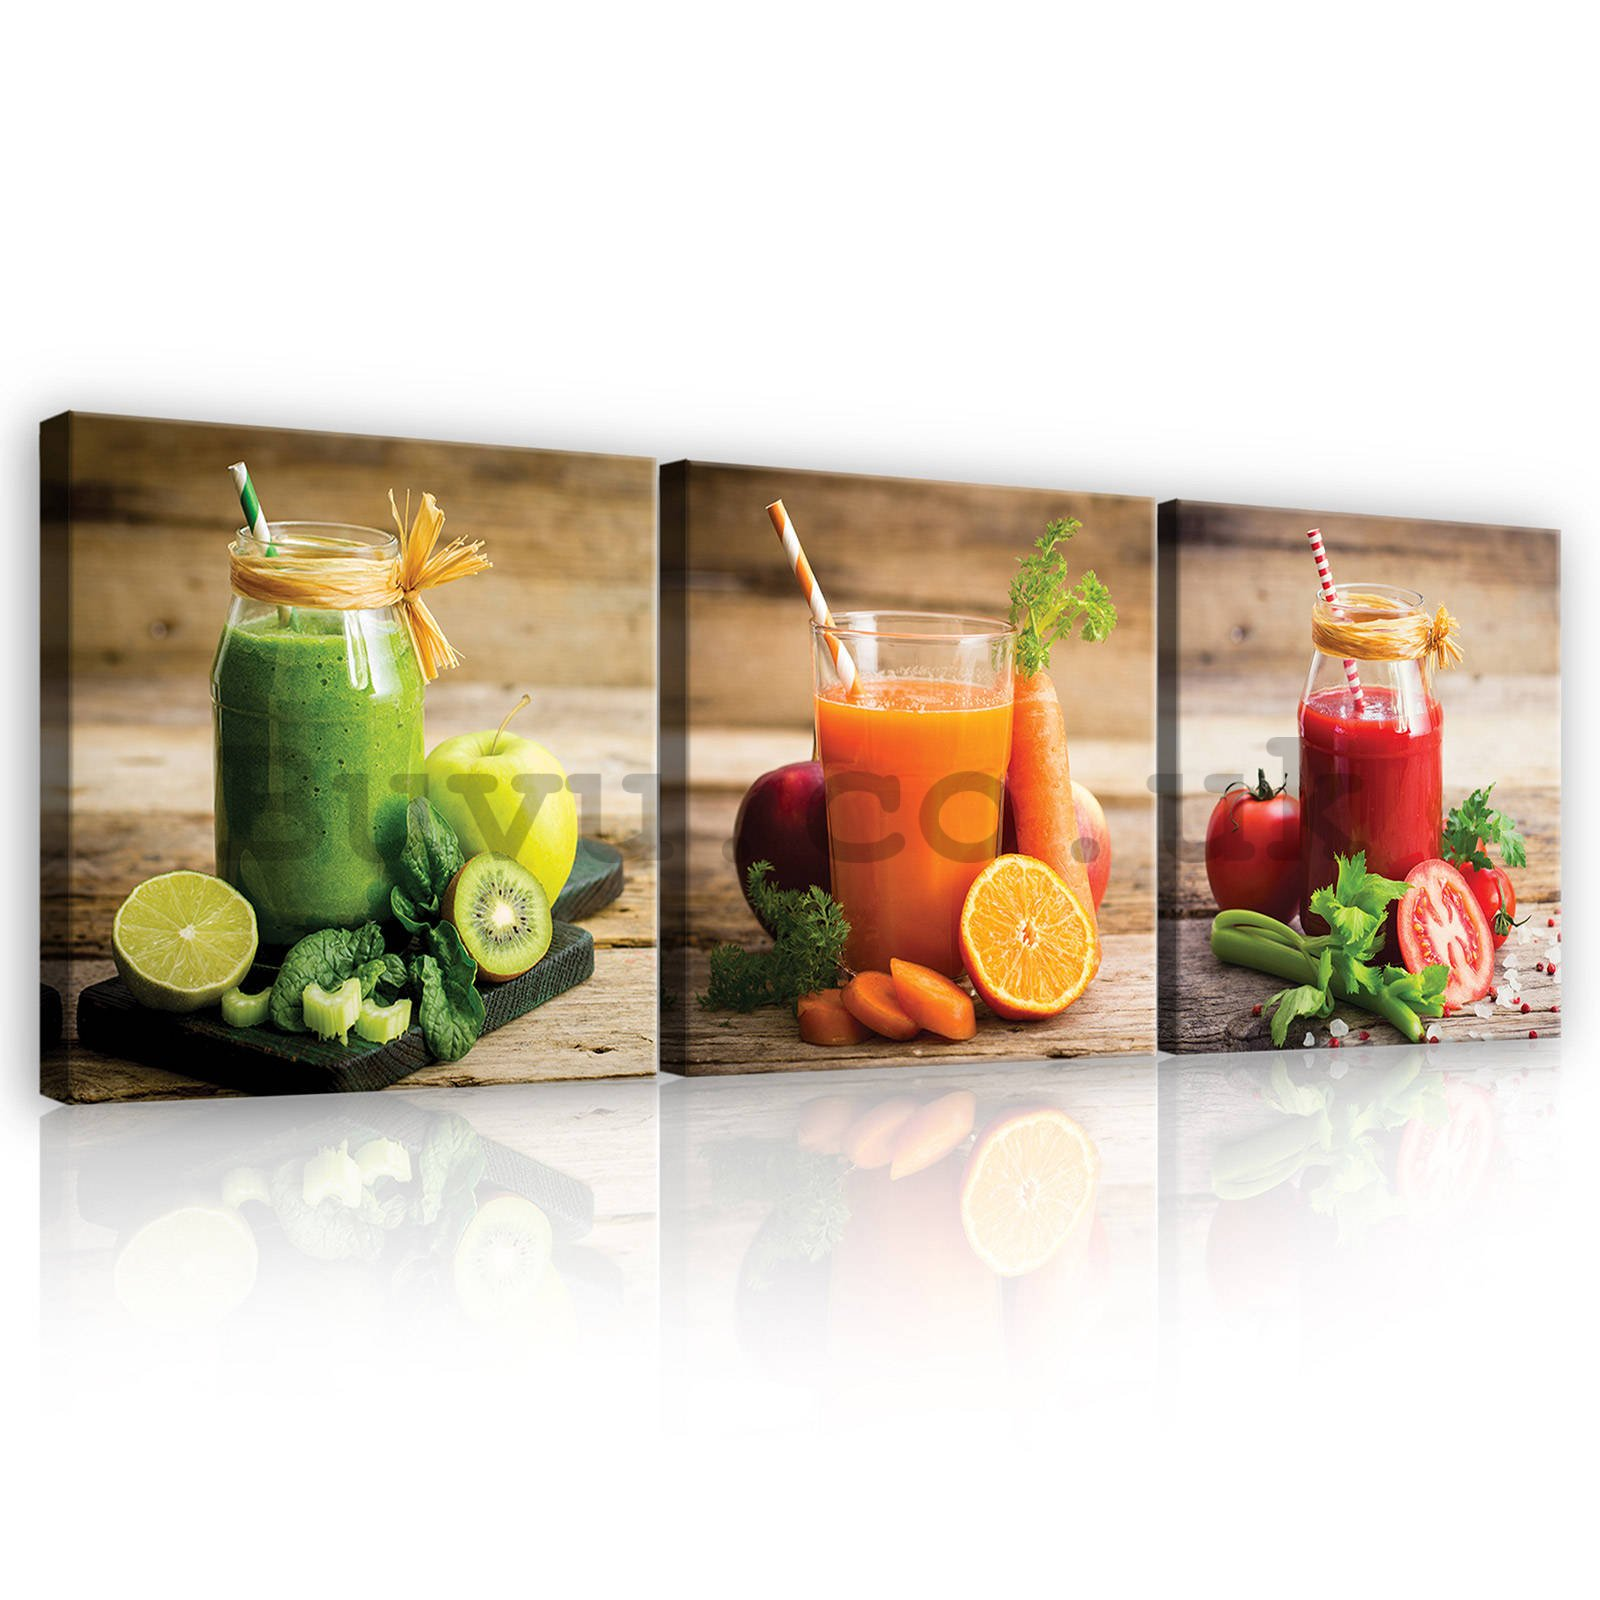 Painting on canvas: Smoothie - set 3pcs 25x25cm